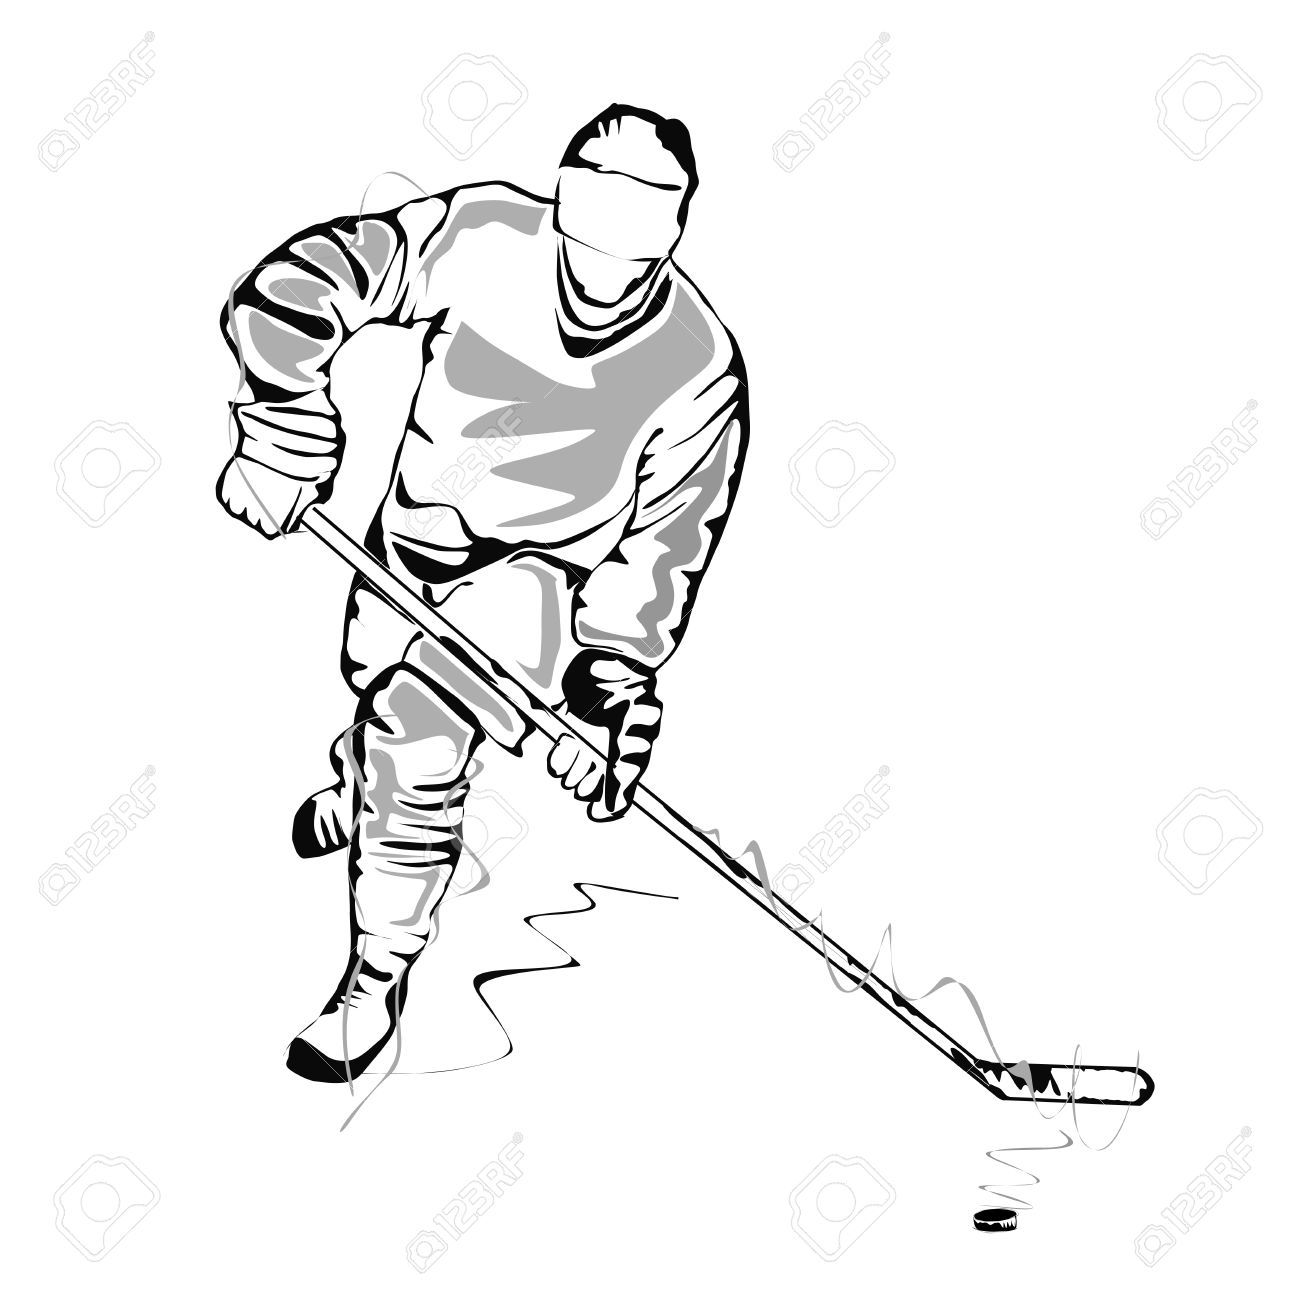 how to draw a cartoon hockey player field hockey drawing at getdrawings free download player a hockey draw how cartoon to